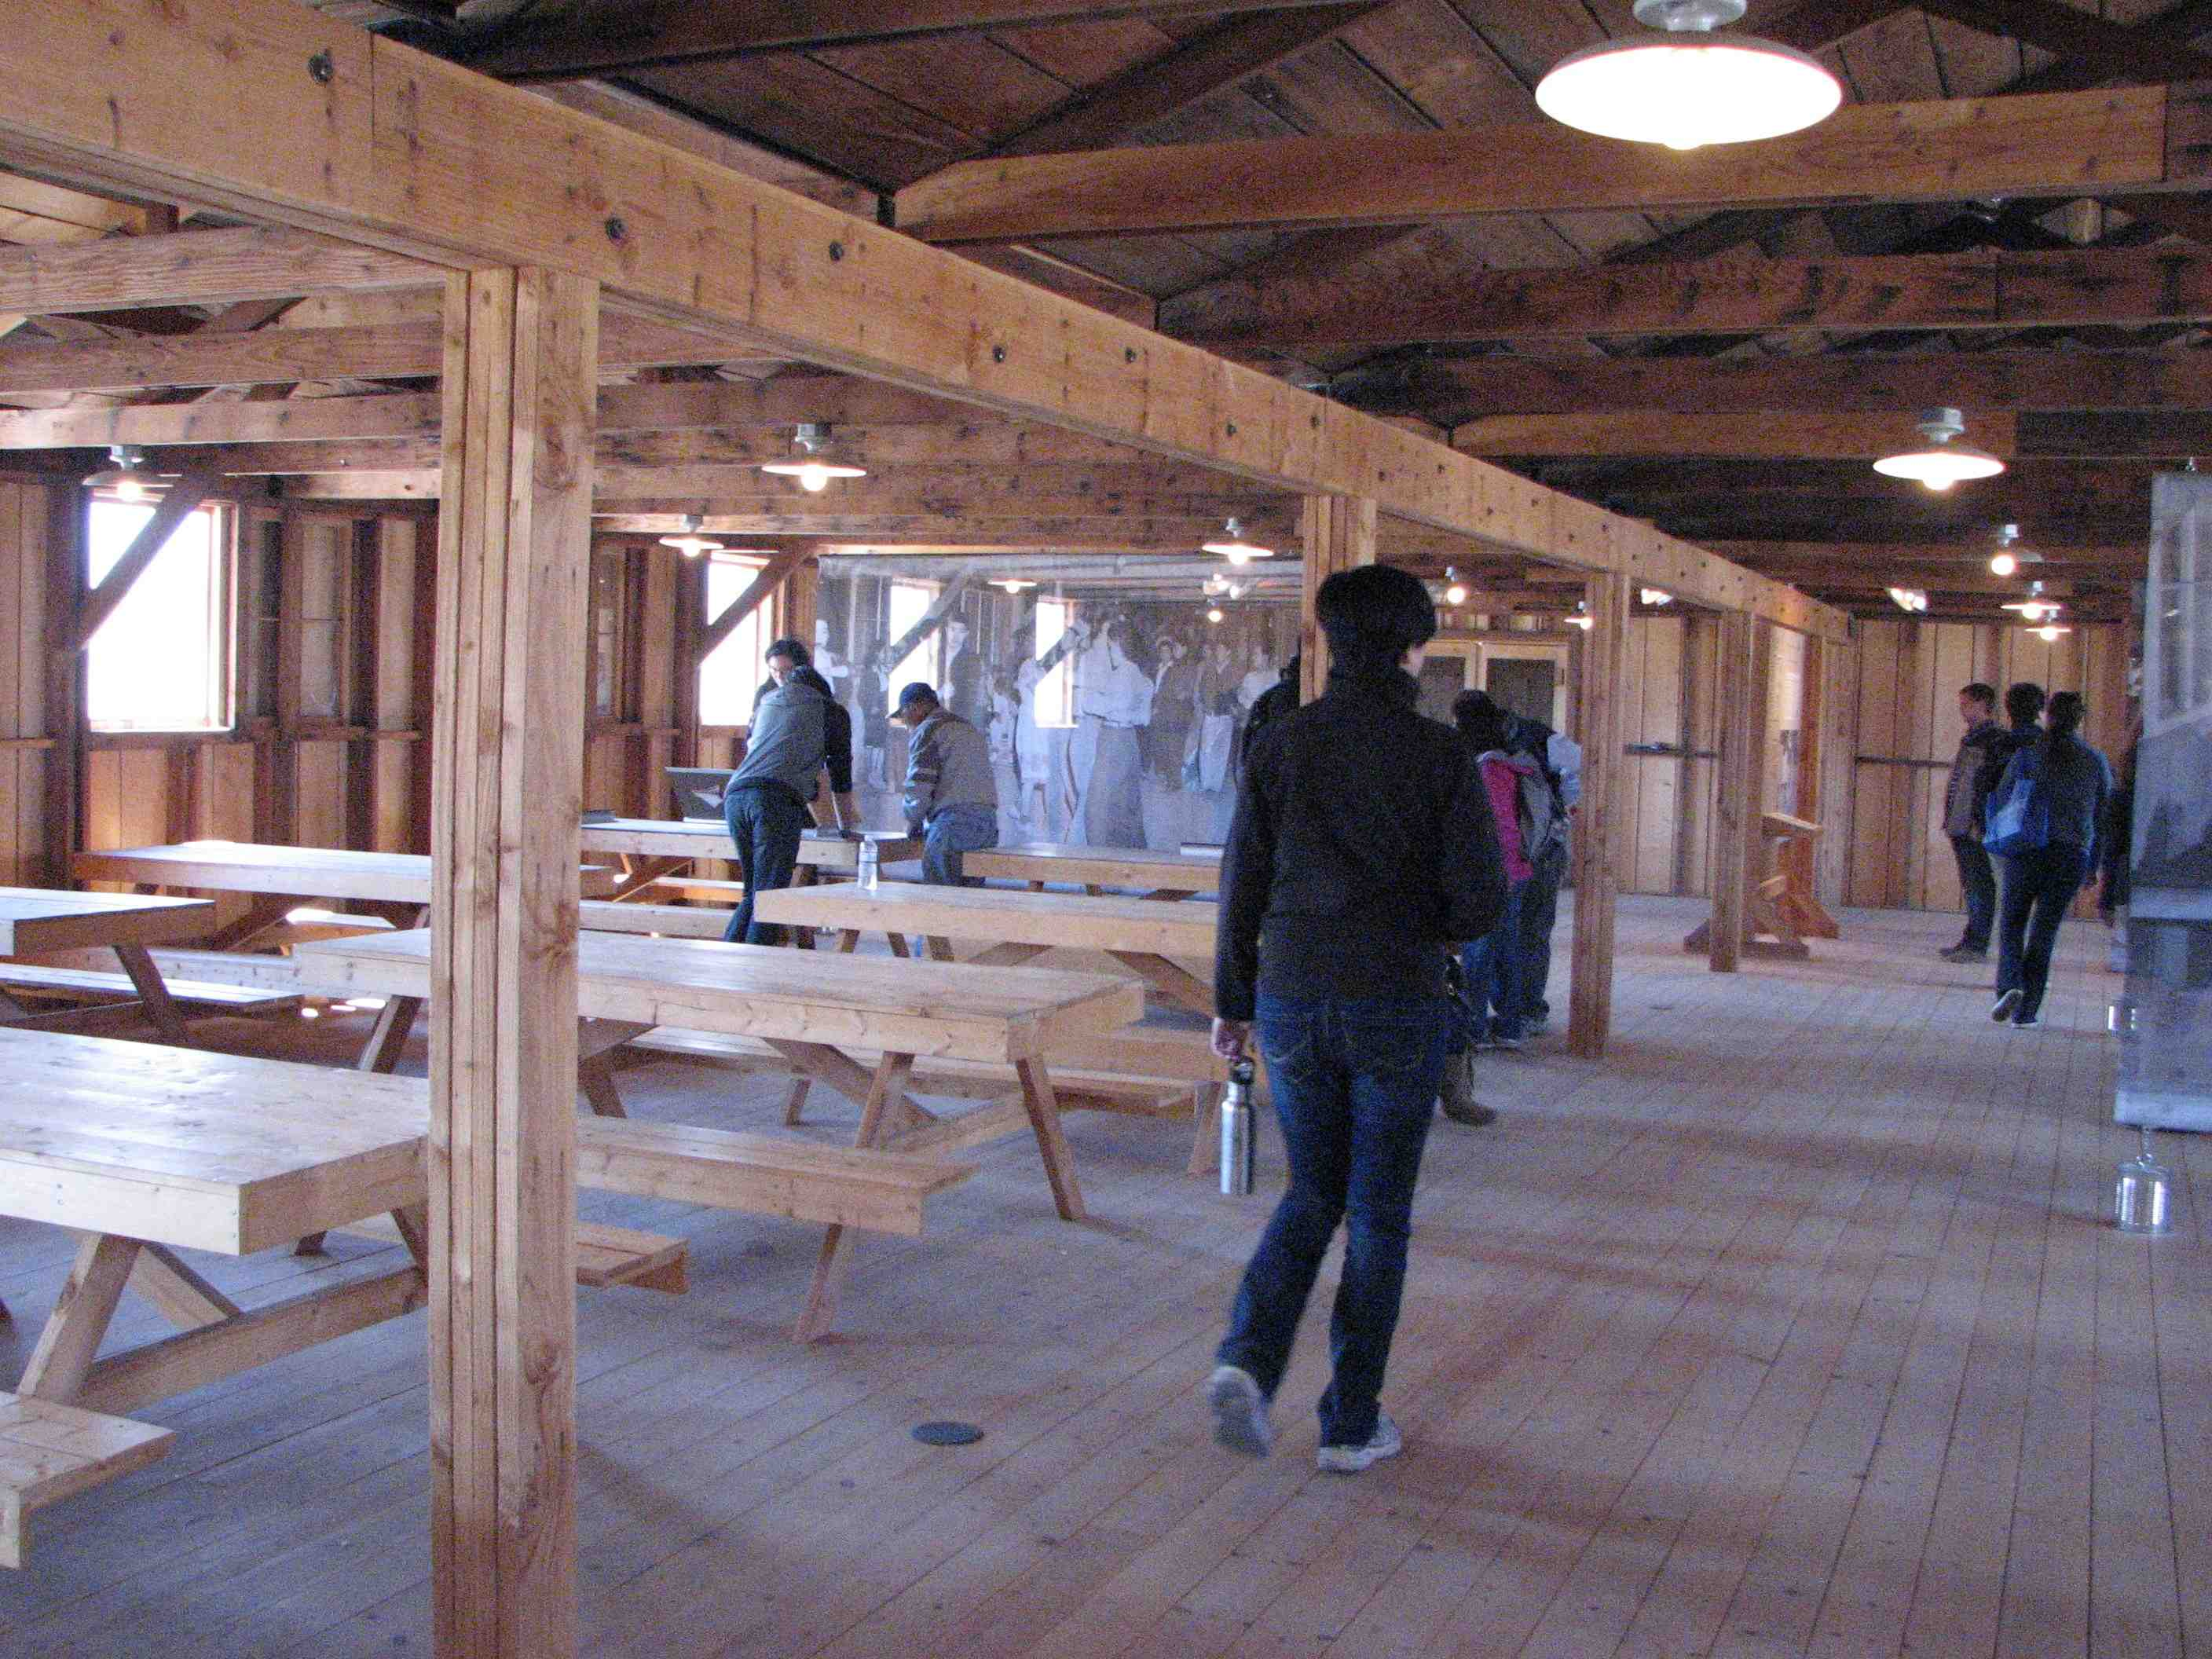 Walk-through exhibits at Manzanar National Historic Site include a replica of a camp mess hall. (J.K. YAMAMOTO/Rafu Shimpo)